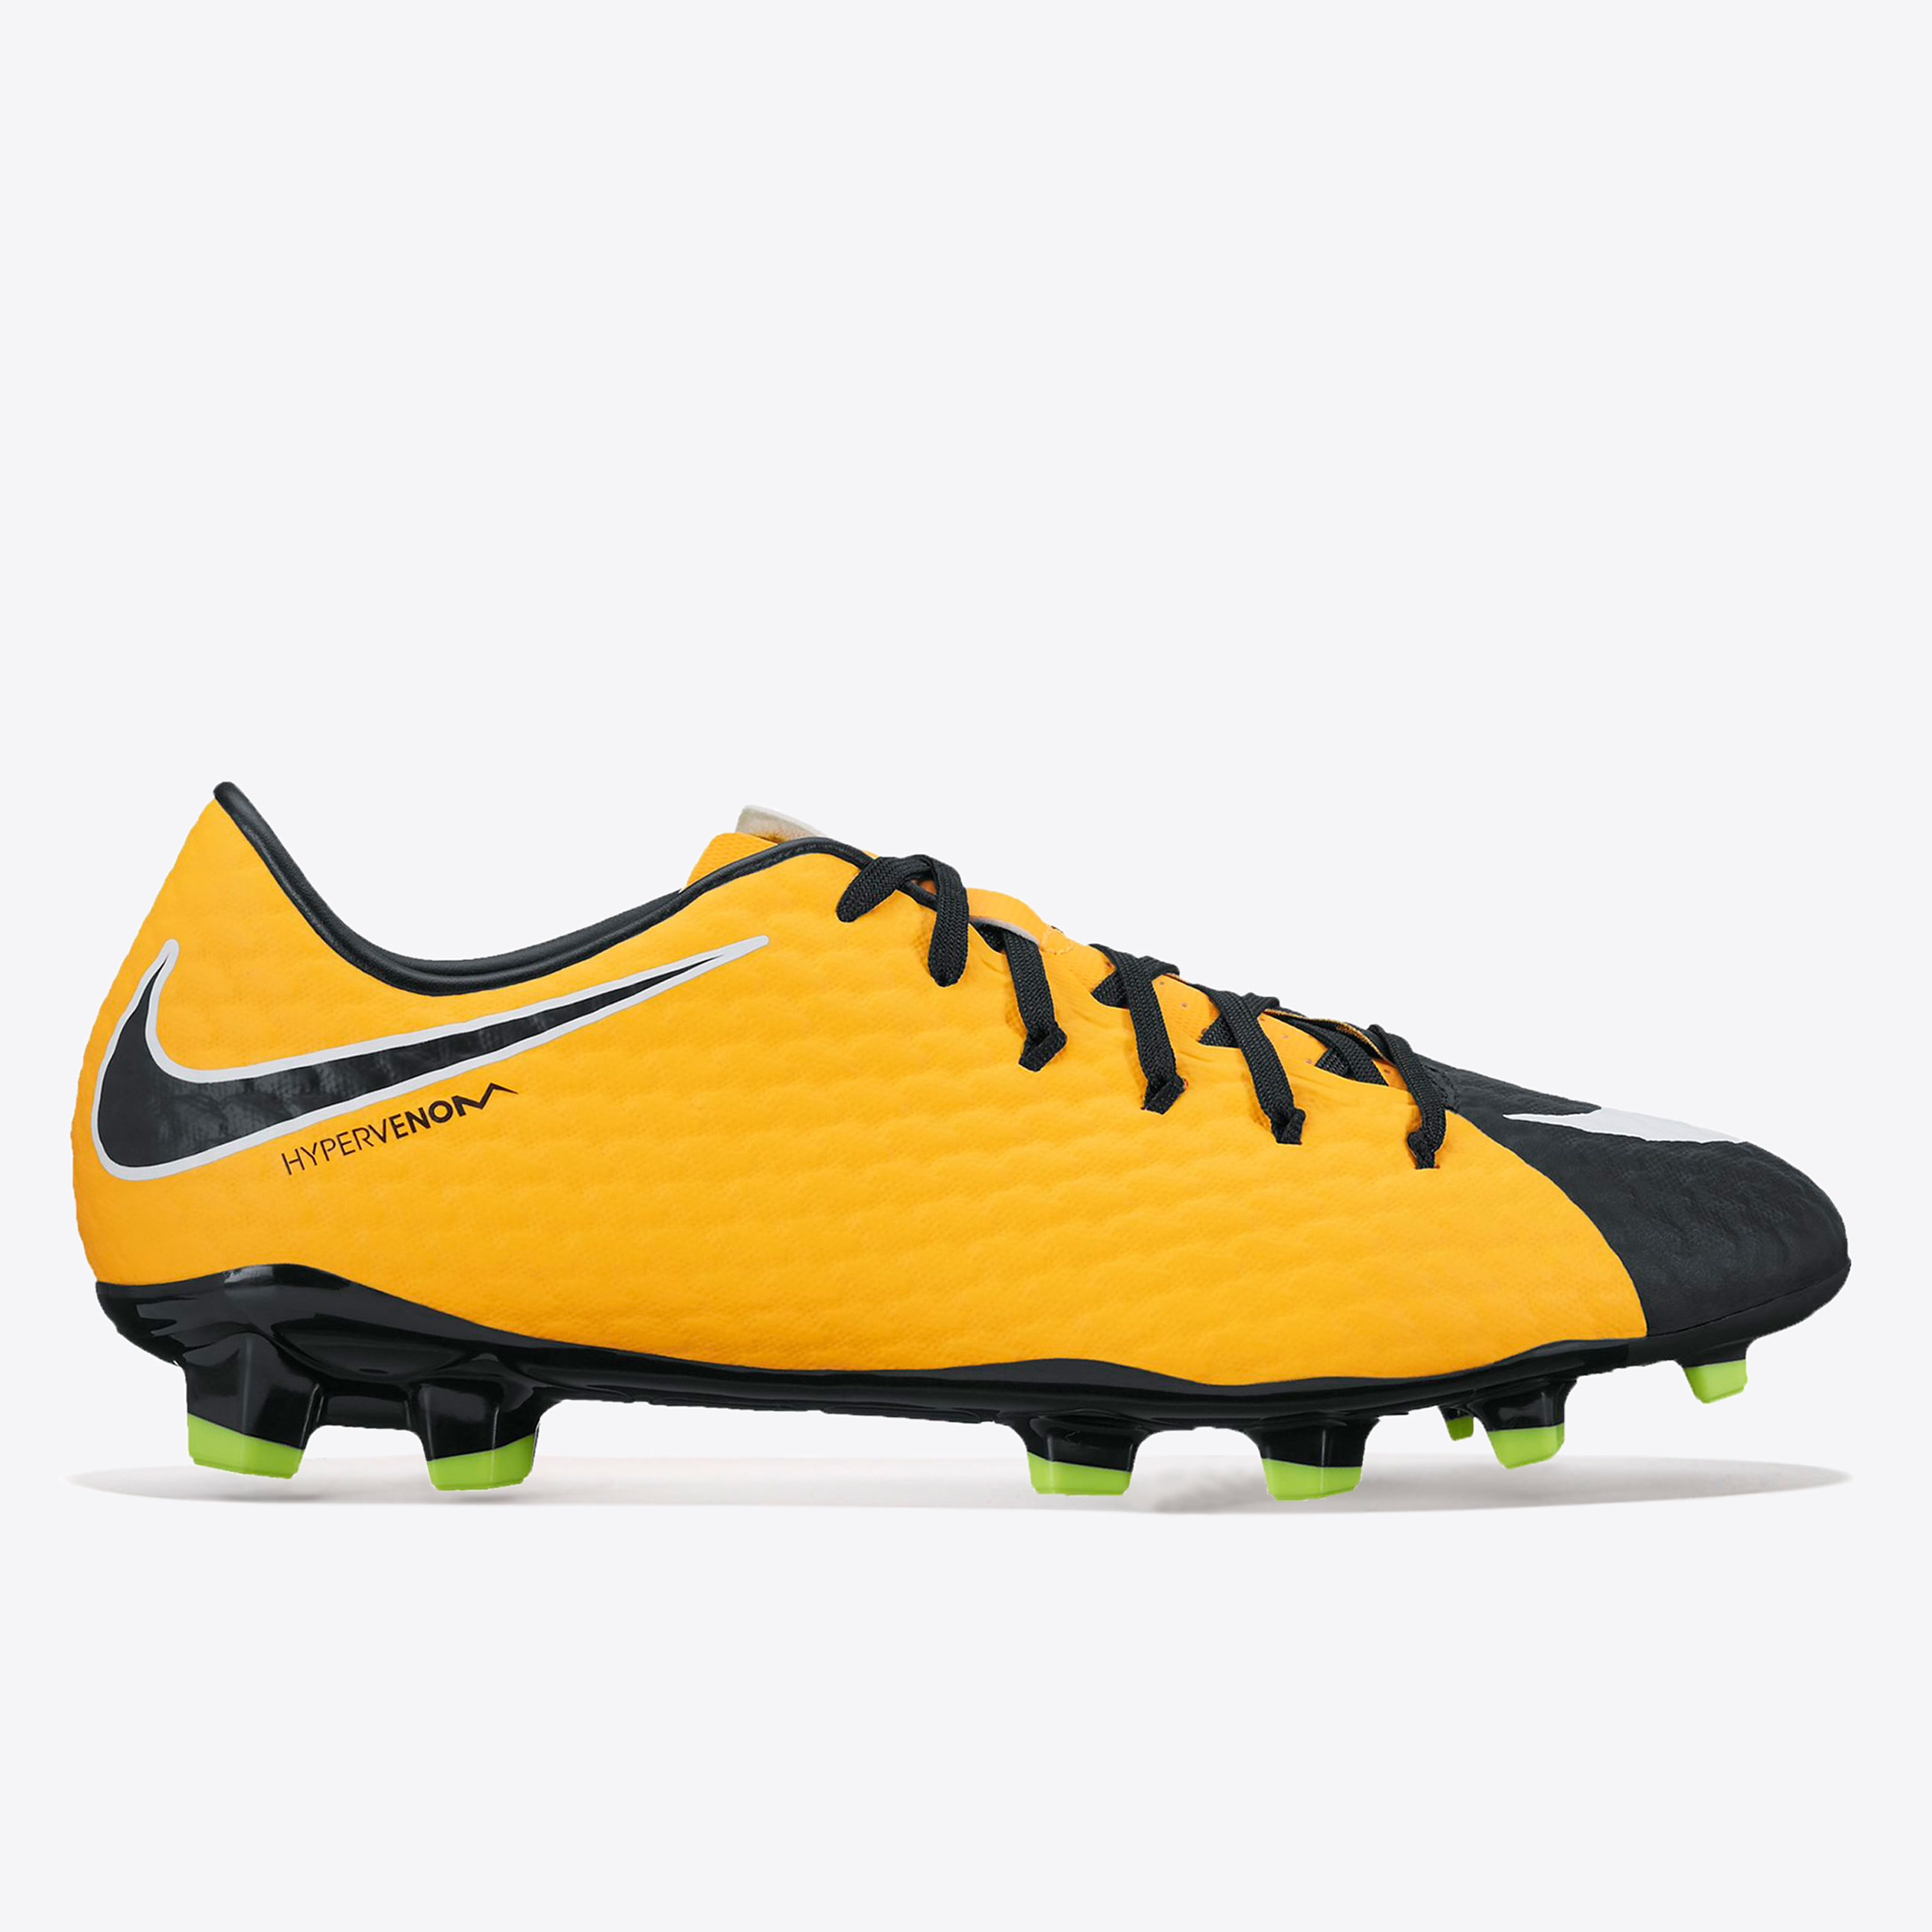 Nike Hypervenom Phelon III Firm Ground Football Boots - Laser Orange/B